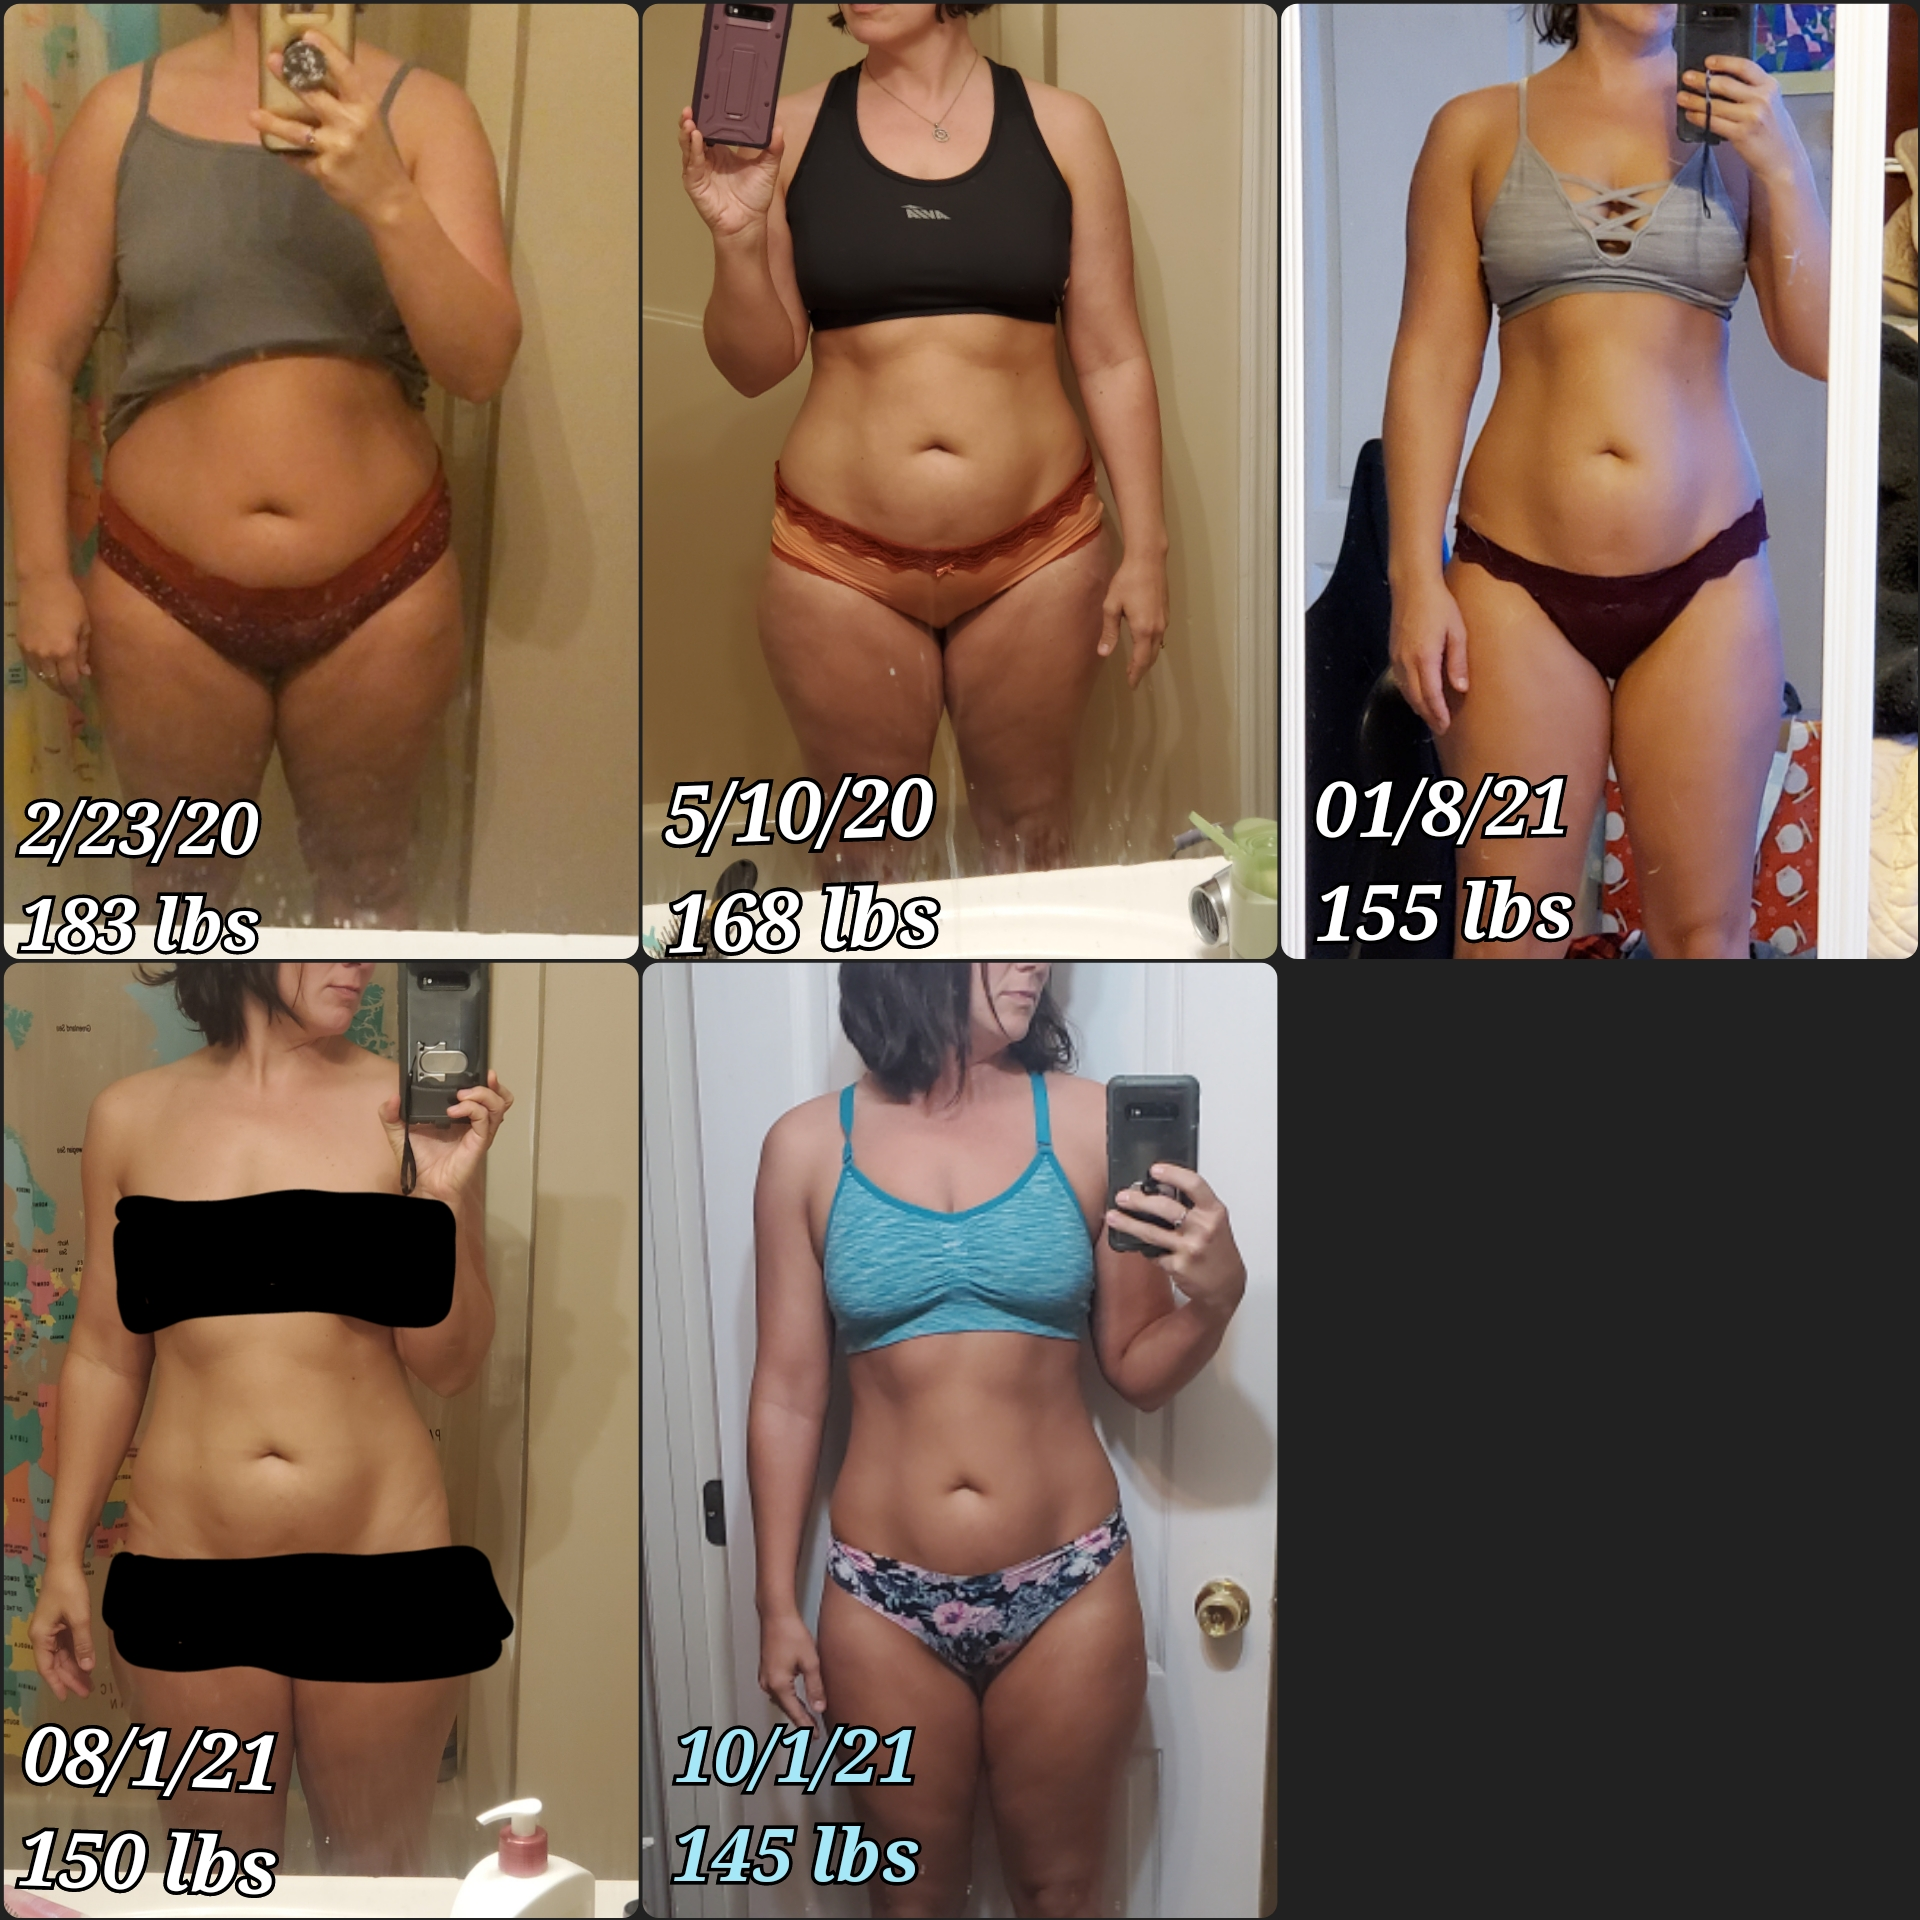 40 lbs Weight Loss Before and After 5 foot 6 Female 185 lbs to 145 lbs